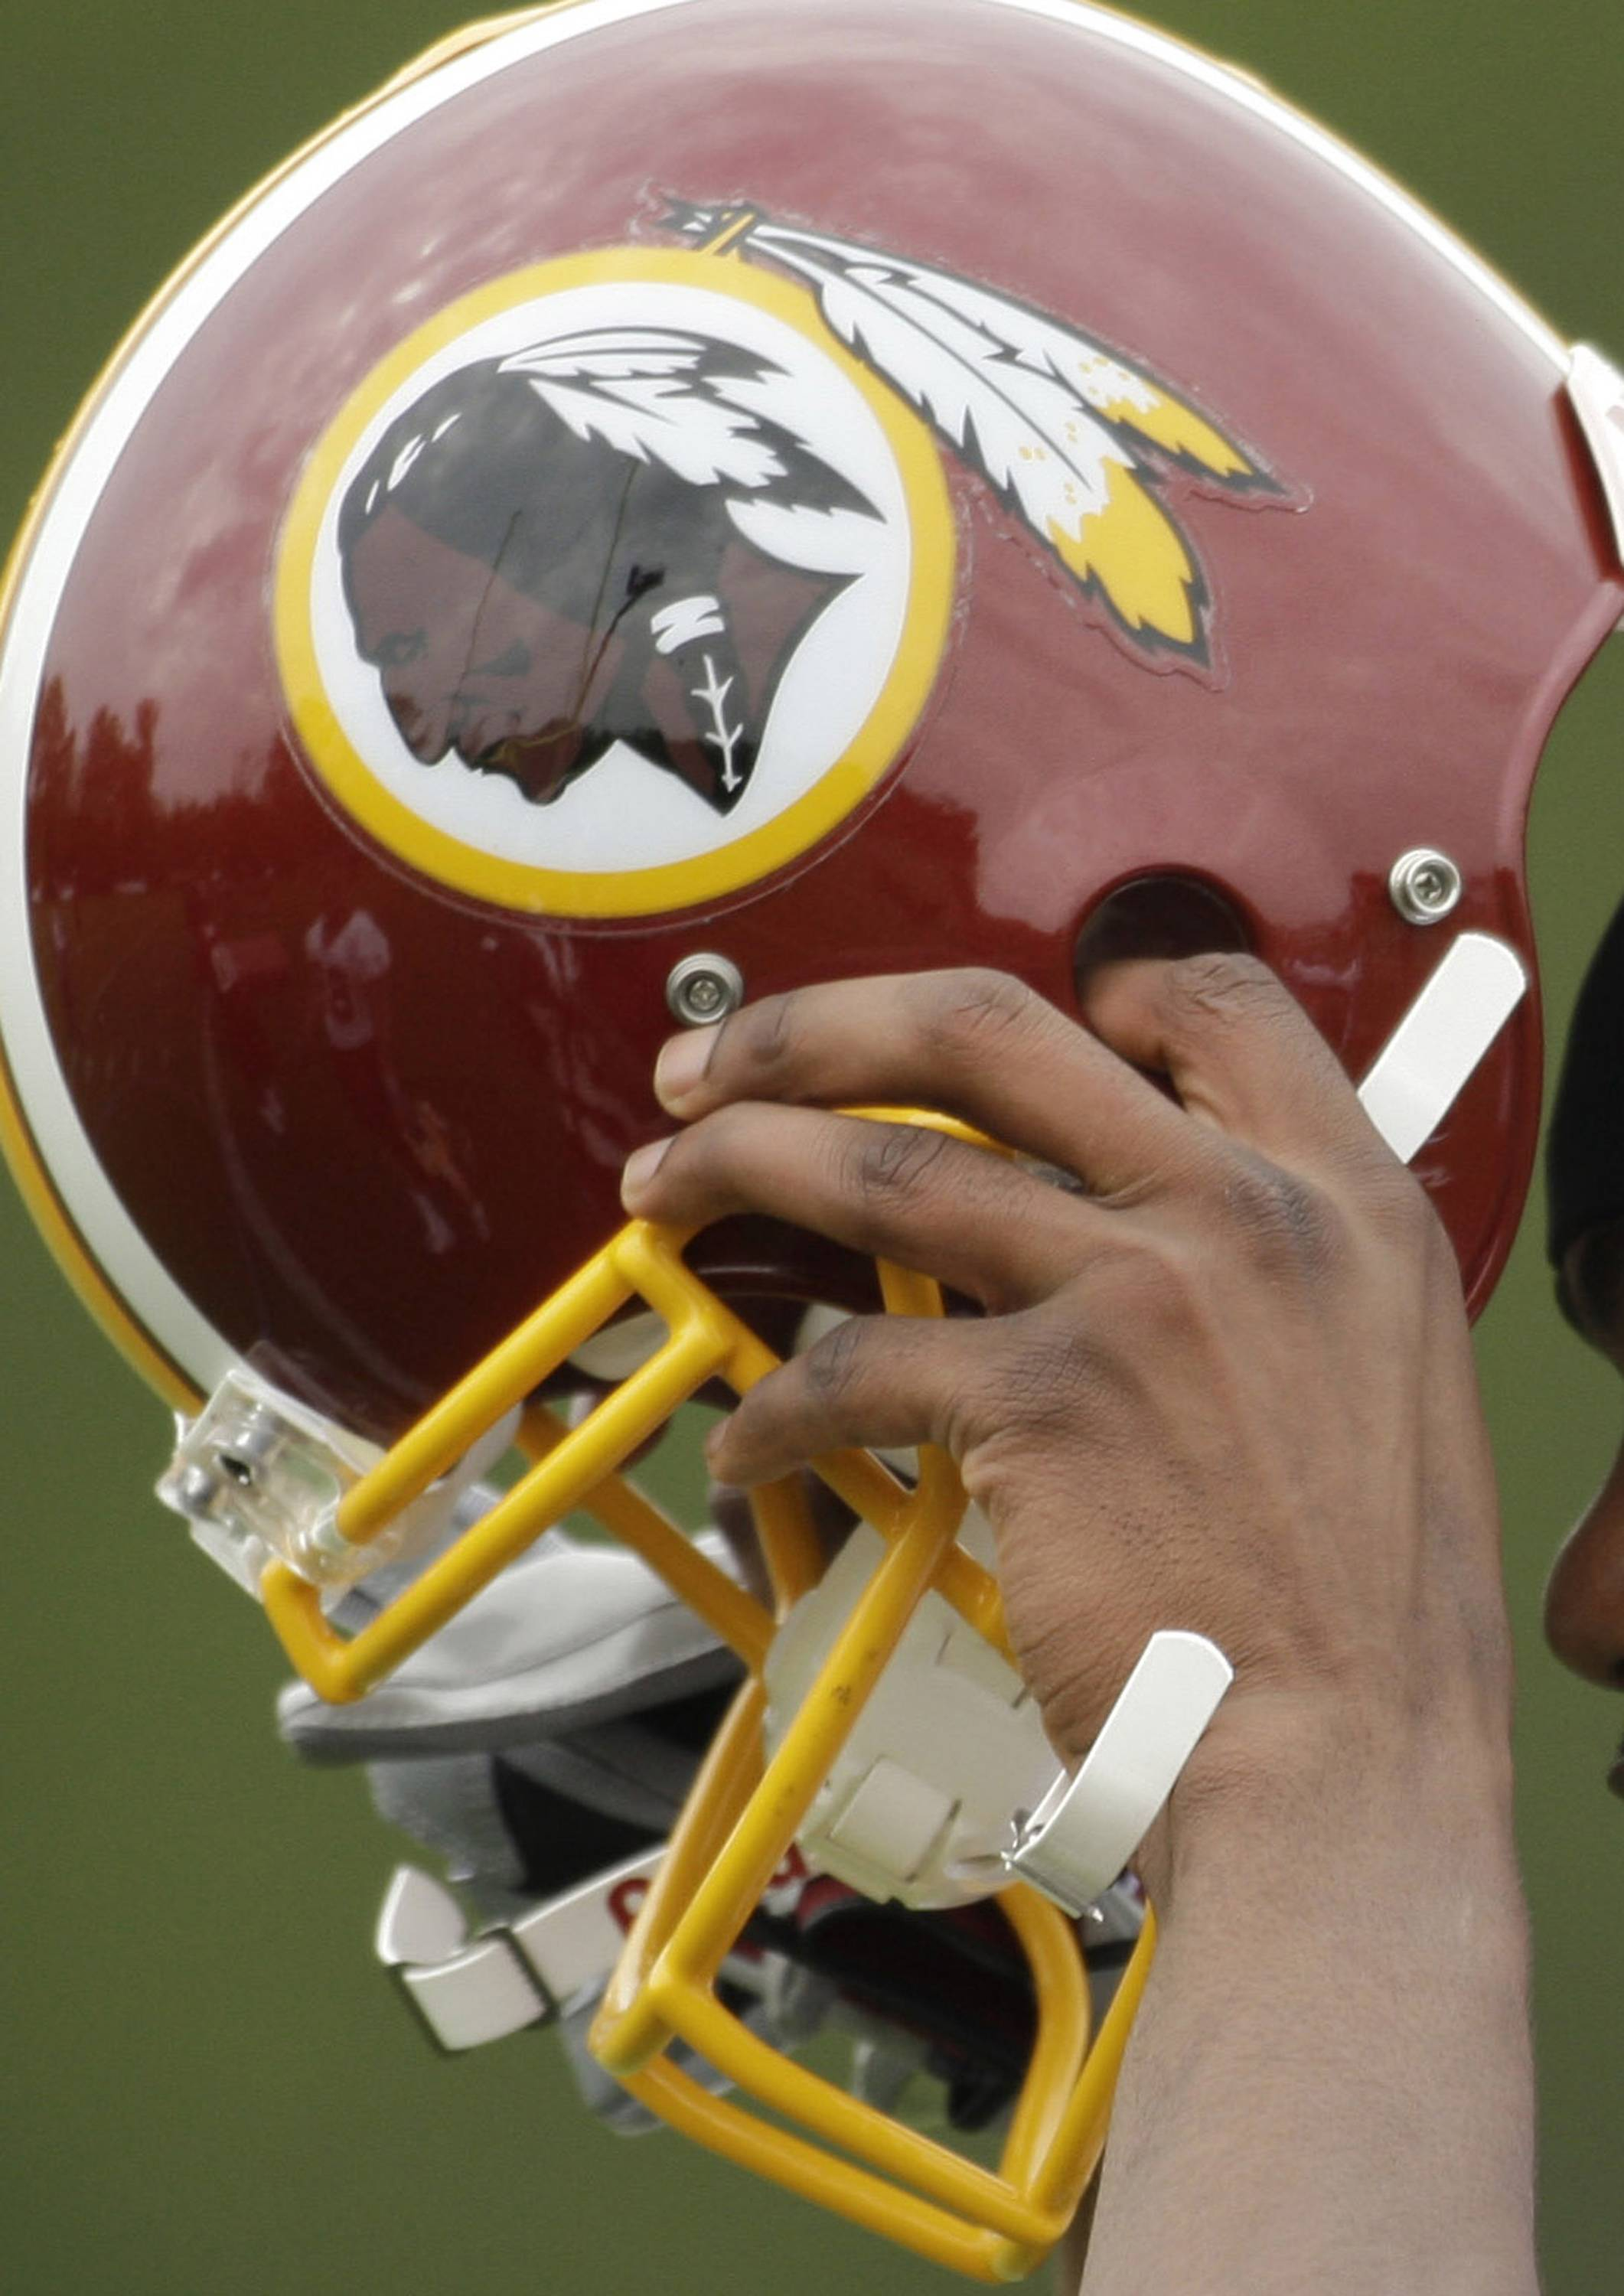 Half of the U.S. Senate says it's time to change the name of the Washington Redskins. Forty-nine Democratic senators wrote NFL Commissioner Roger Goodell on Thursday to say racism and bigotry do not belong in professional sports.